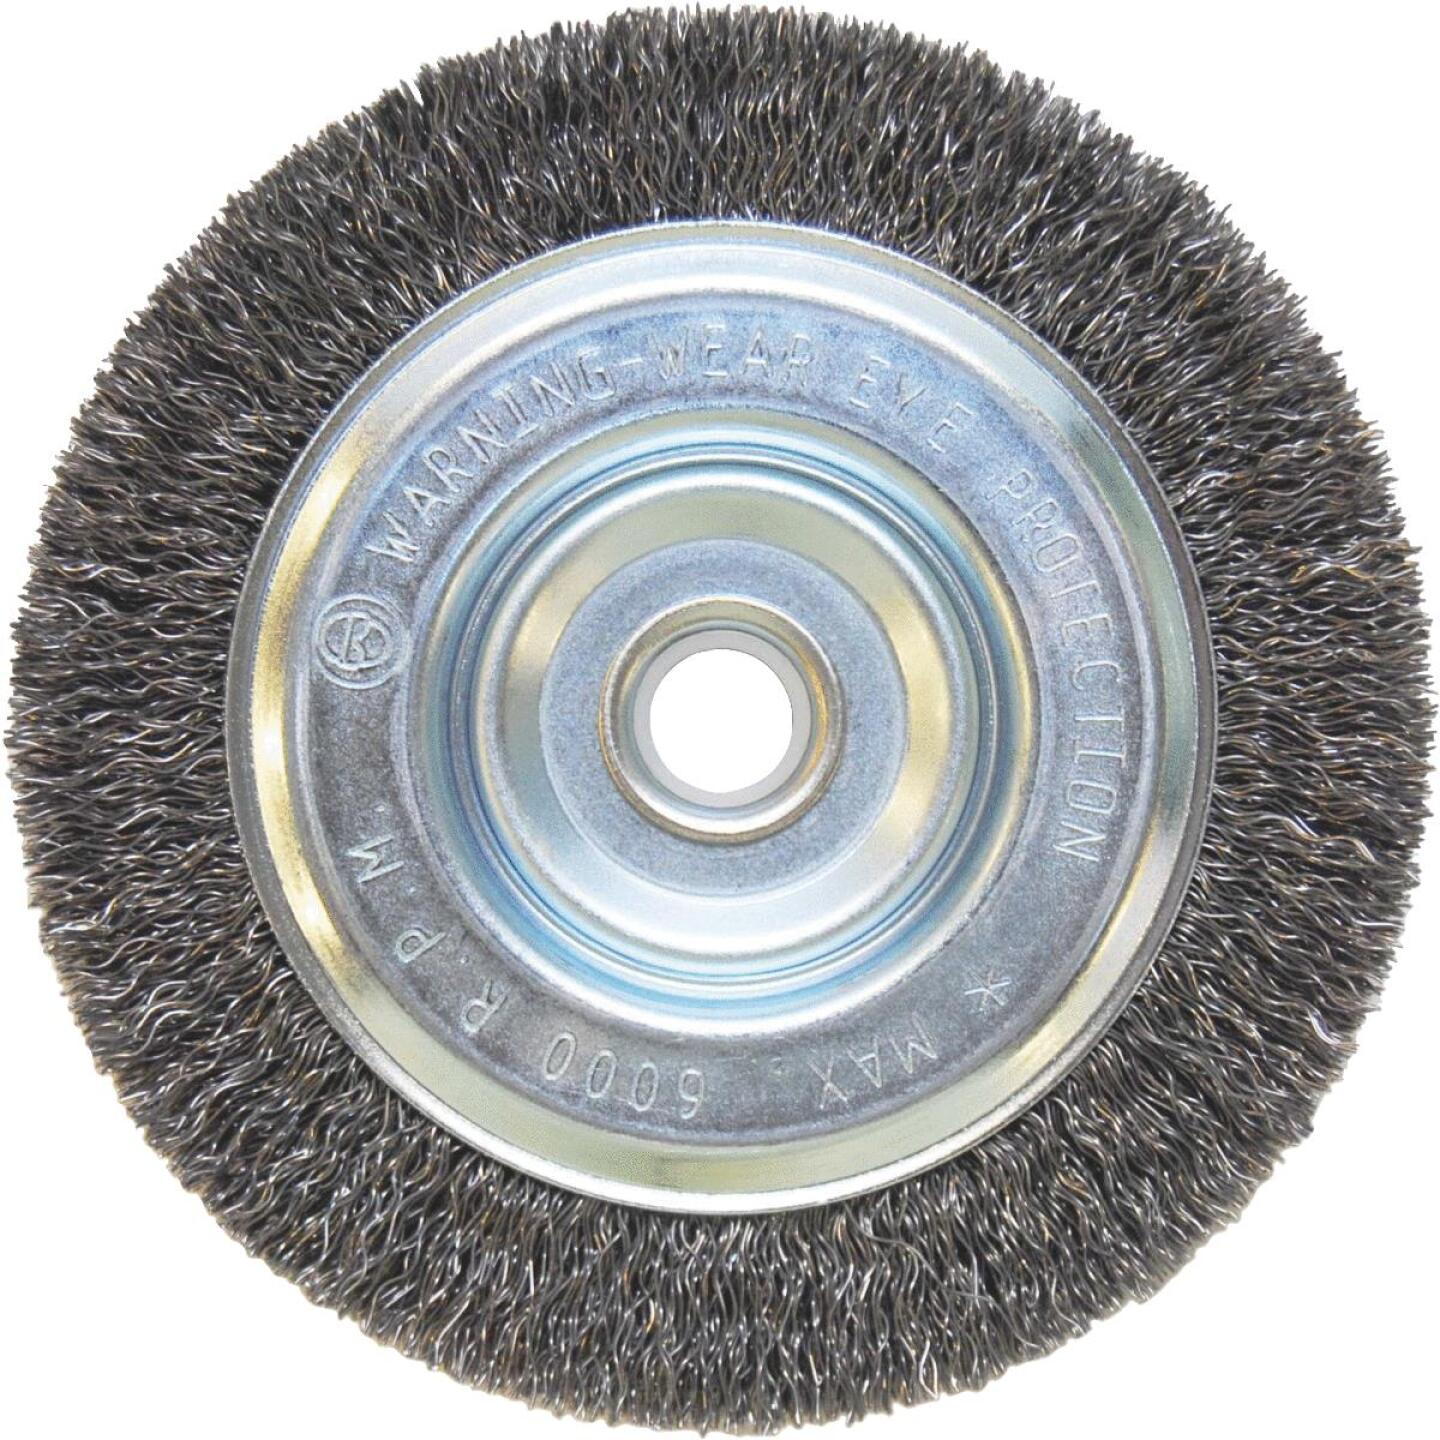 Weiler Vortec 5 In. Crimped, Coarse Bench Grinder Wire Wheel Image 1